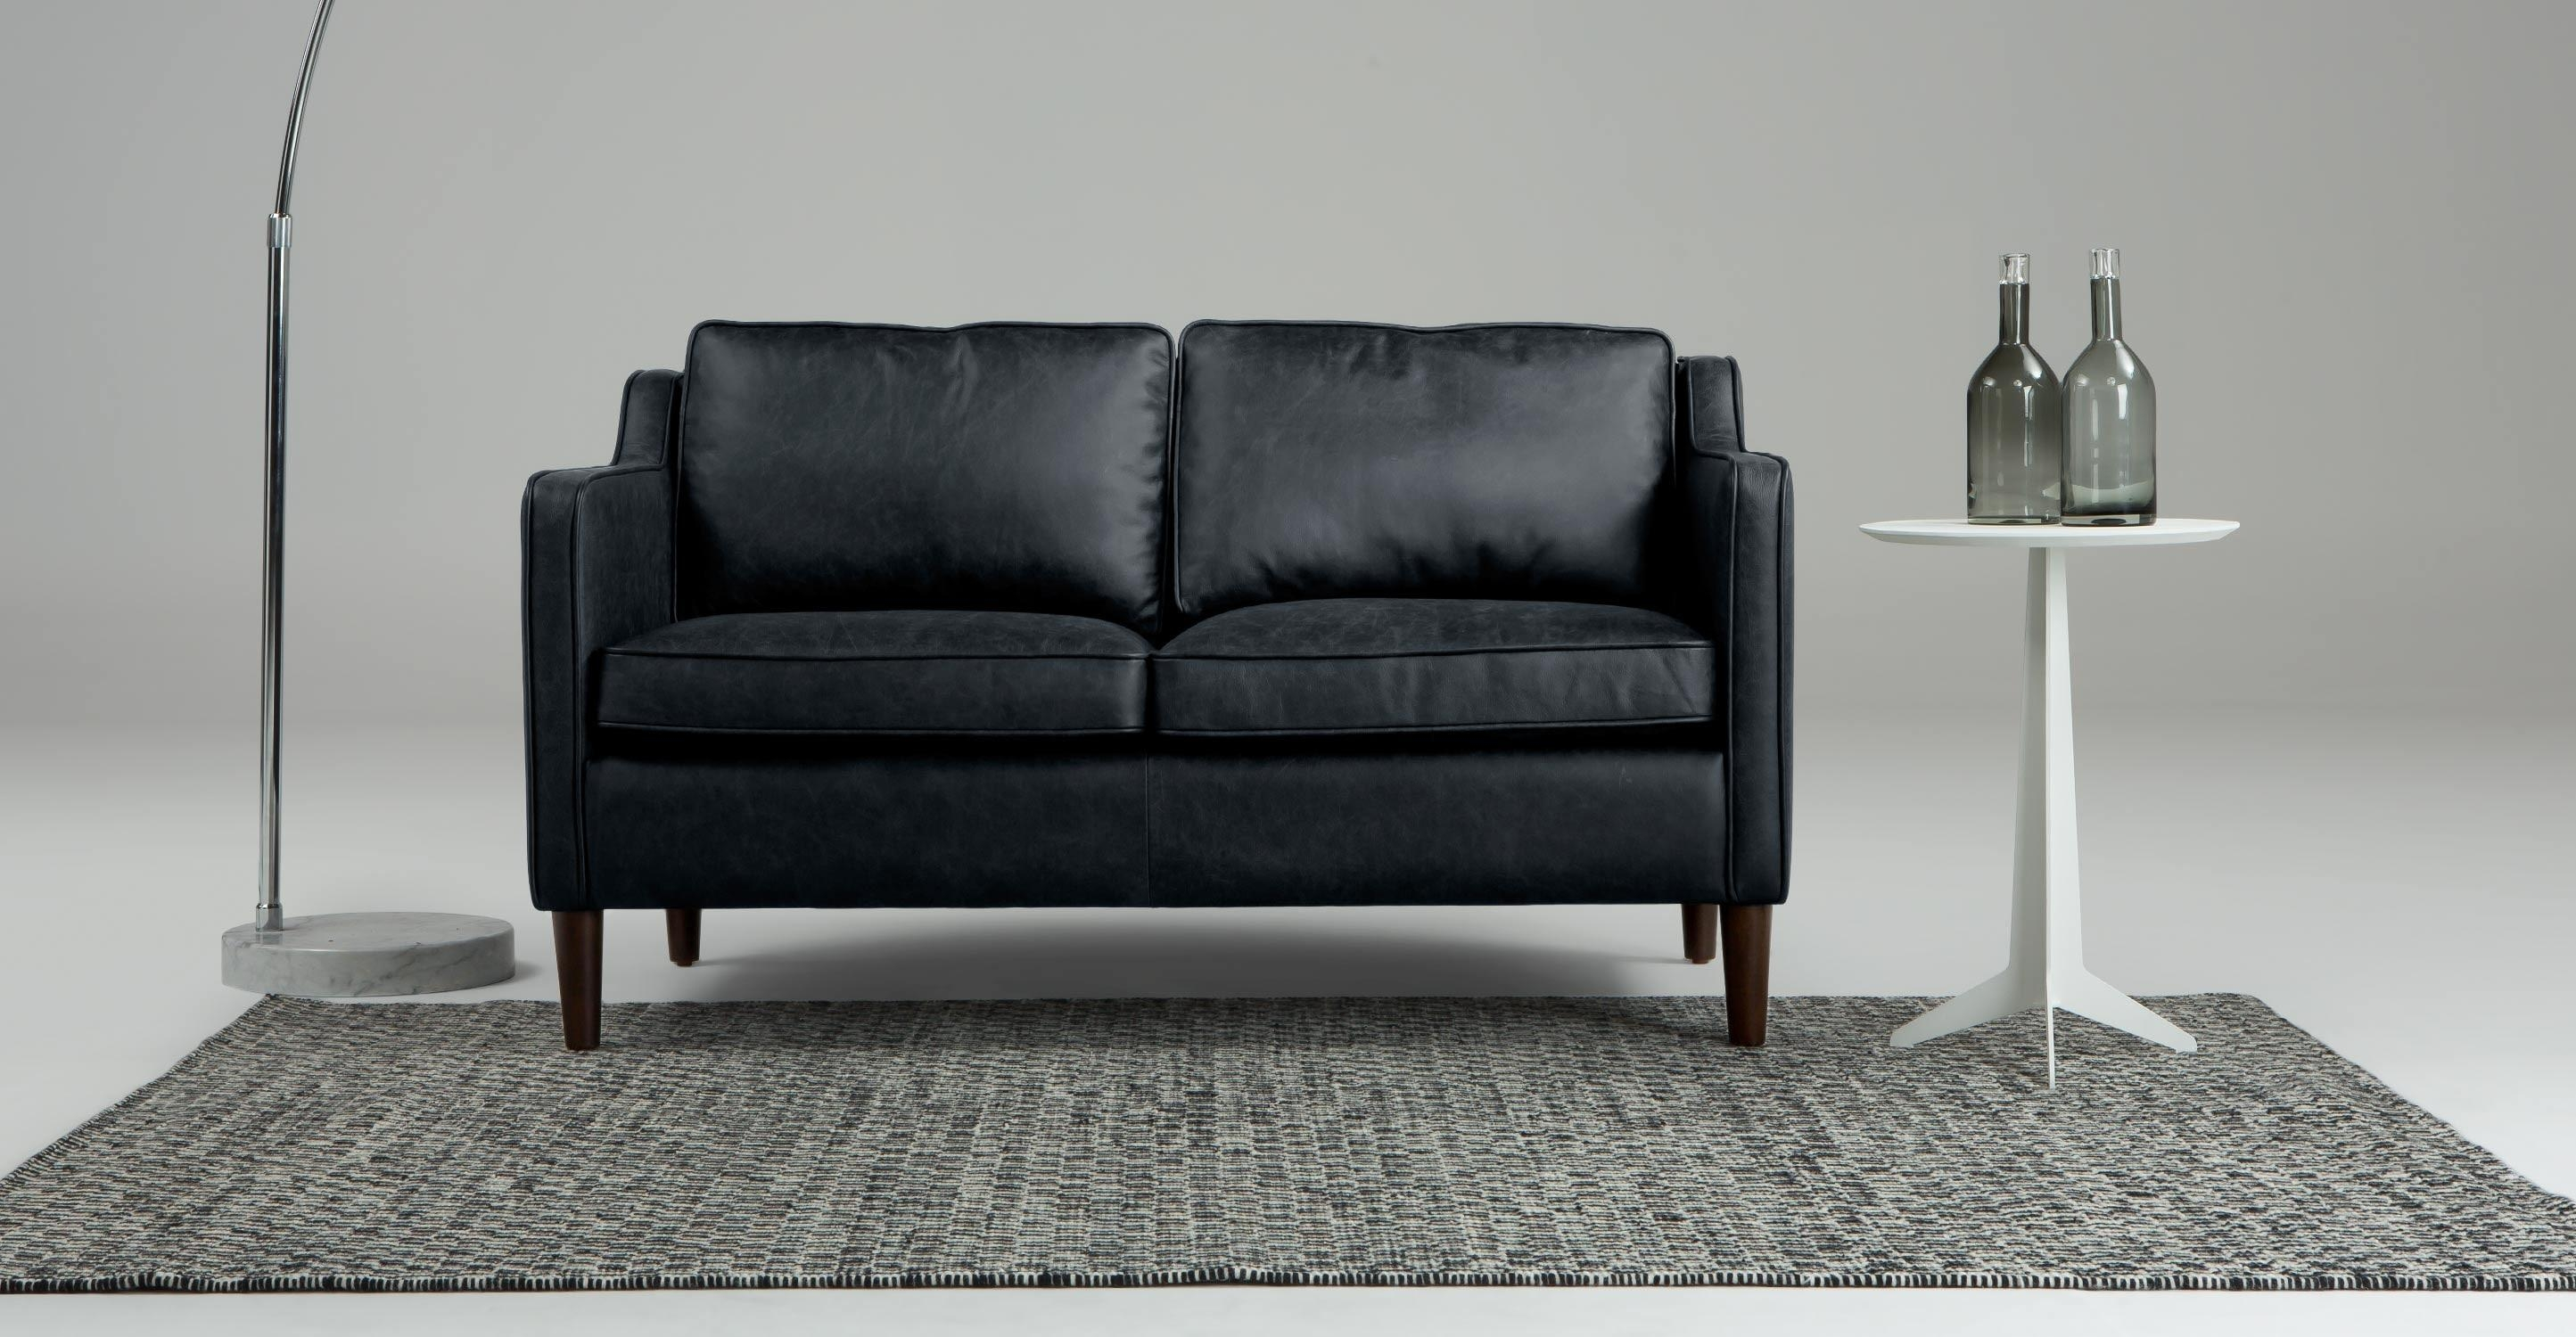 Walken 2 Seater Sofa In Black Premium Leather | Made For Black 2 Seater Sofas (Image 20 of 20)